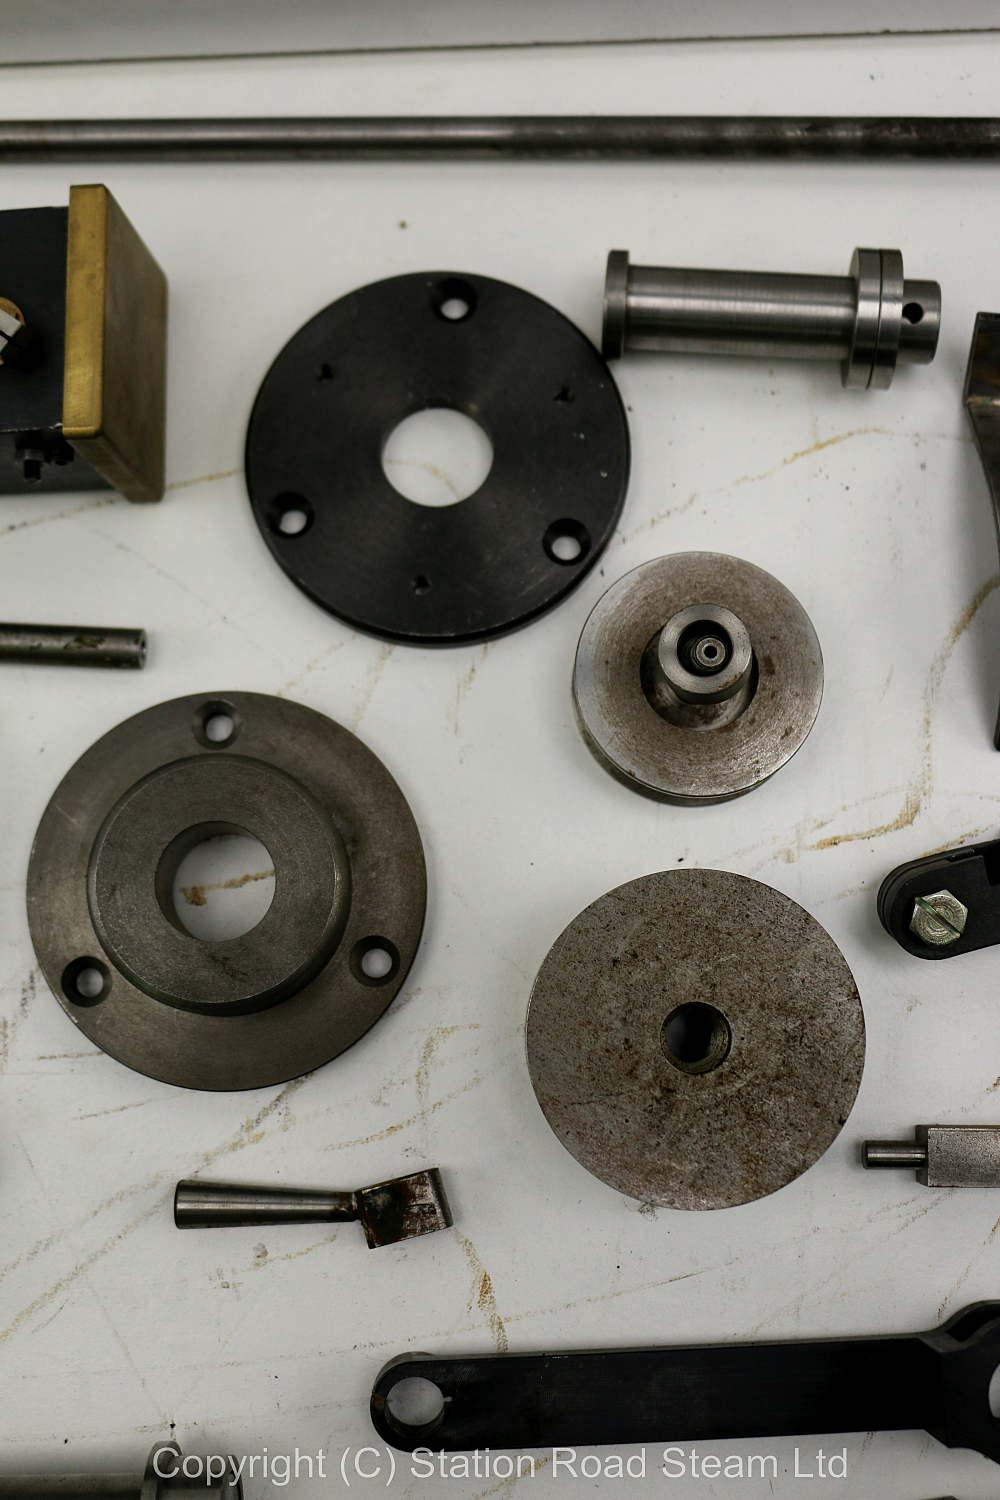 Wheels, boiler kit and professionally machined parts for 4 inch scale Foster